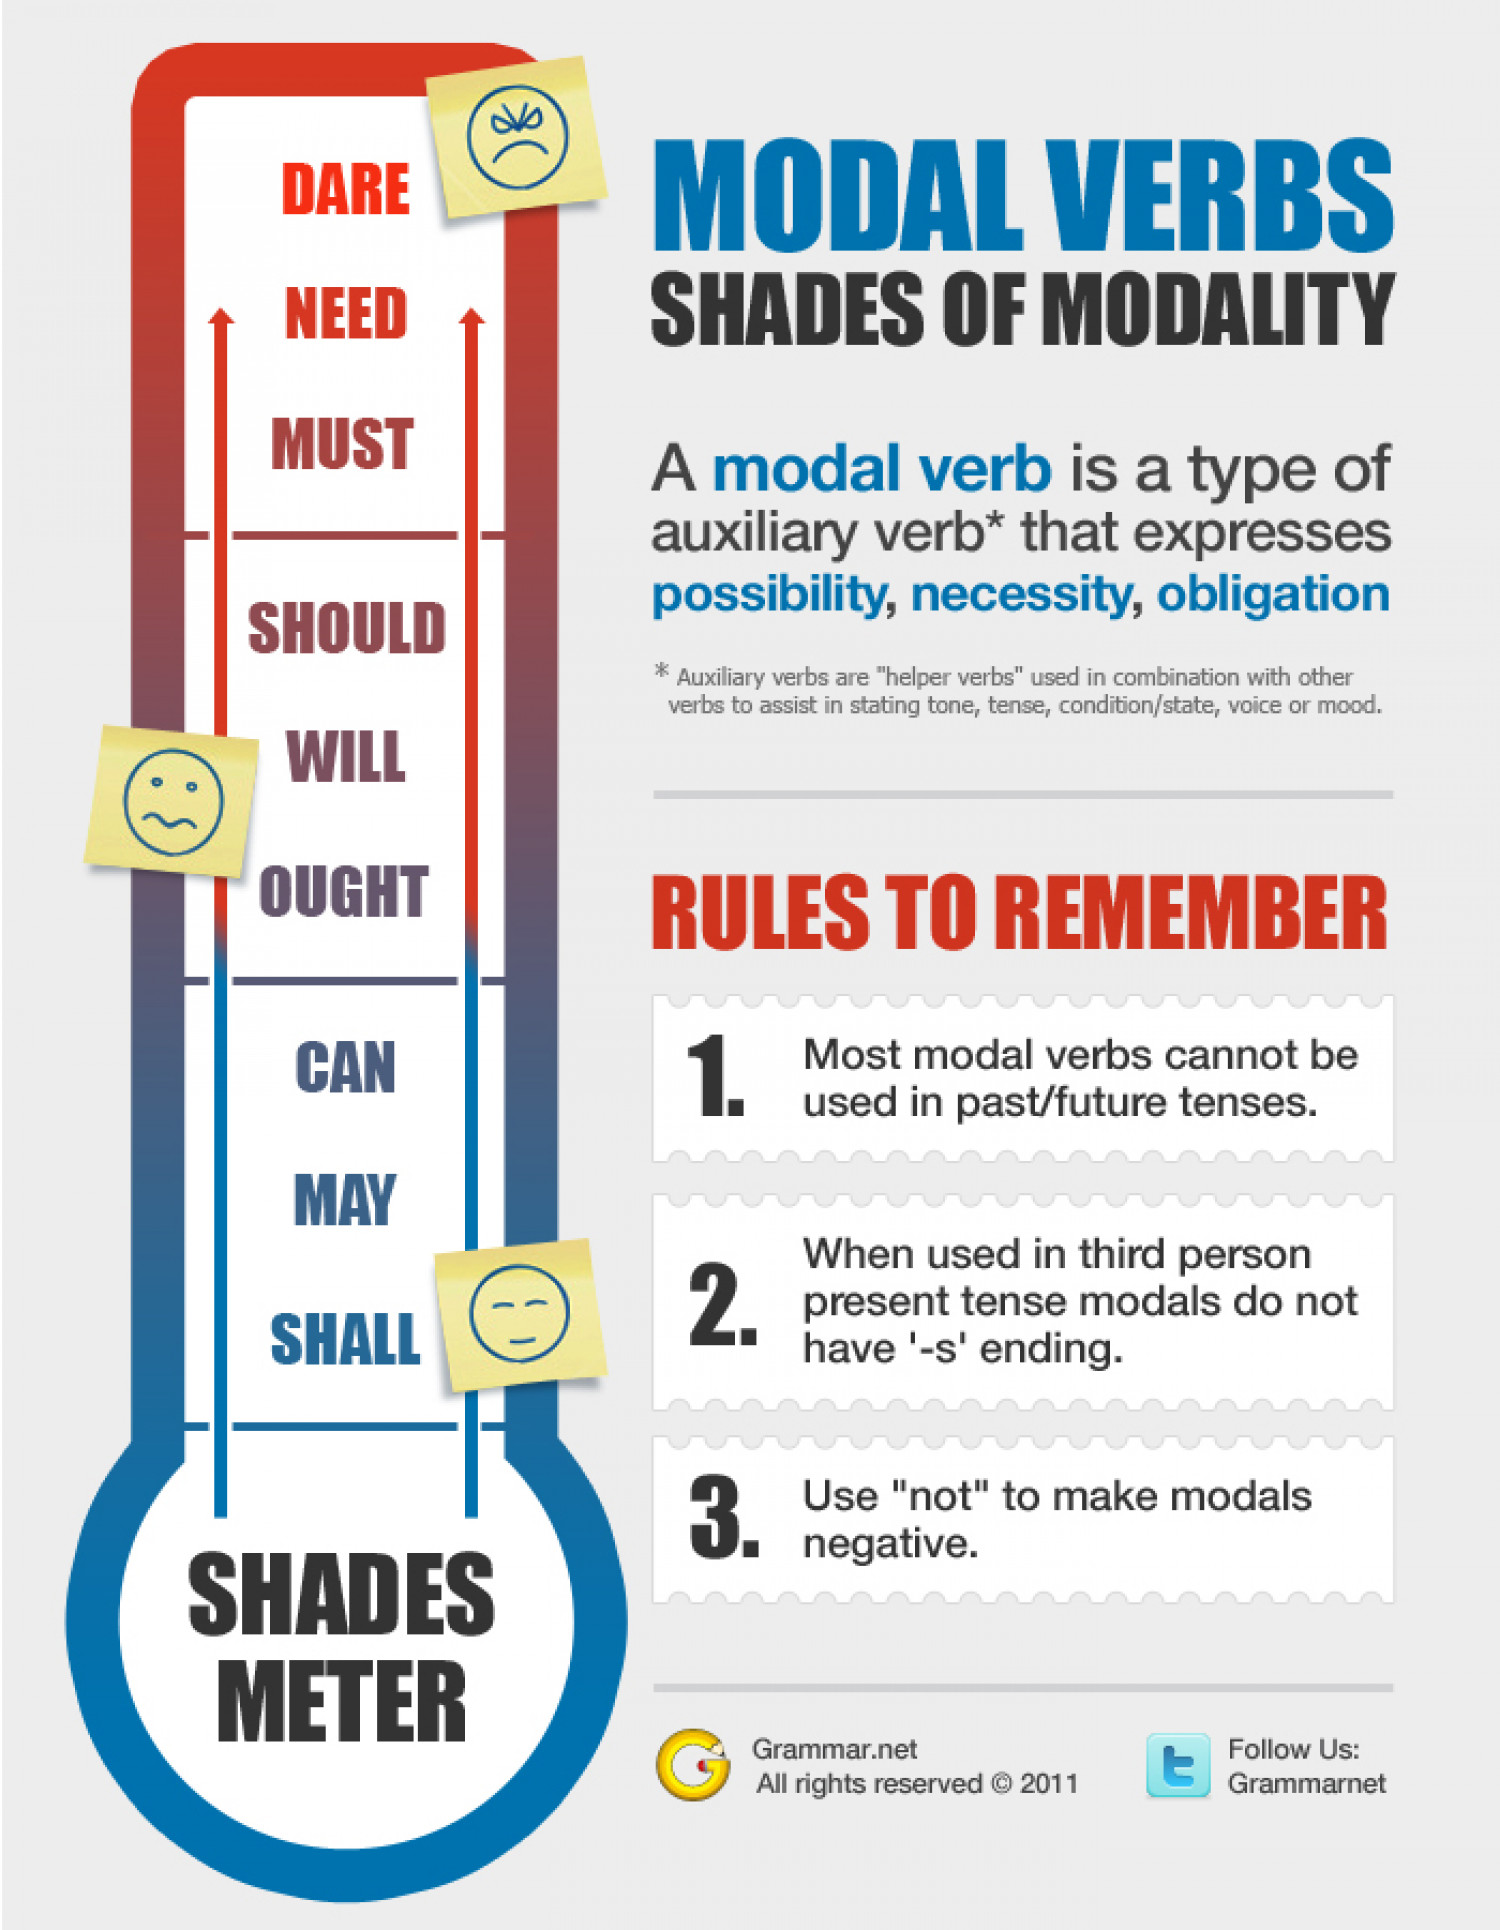 Shades of Modality Infographic